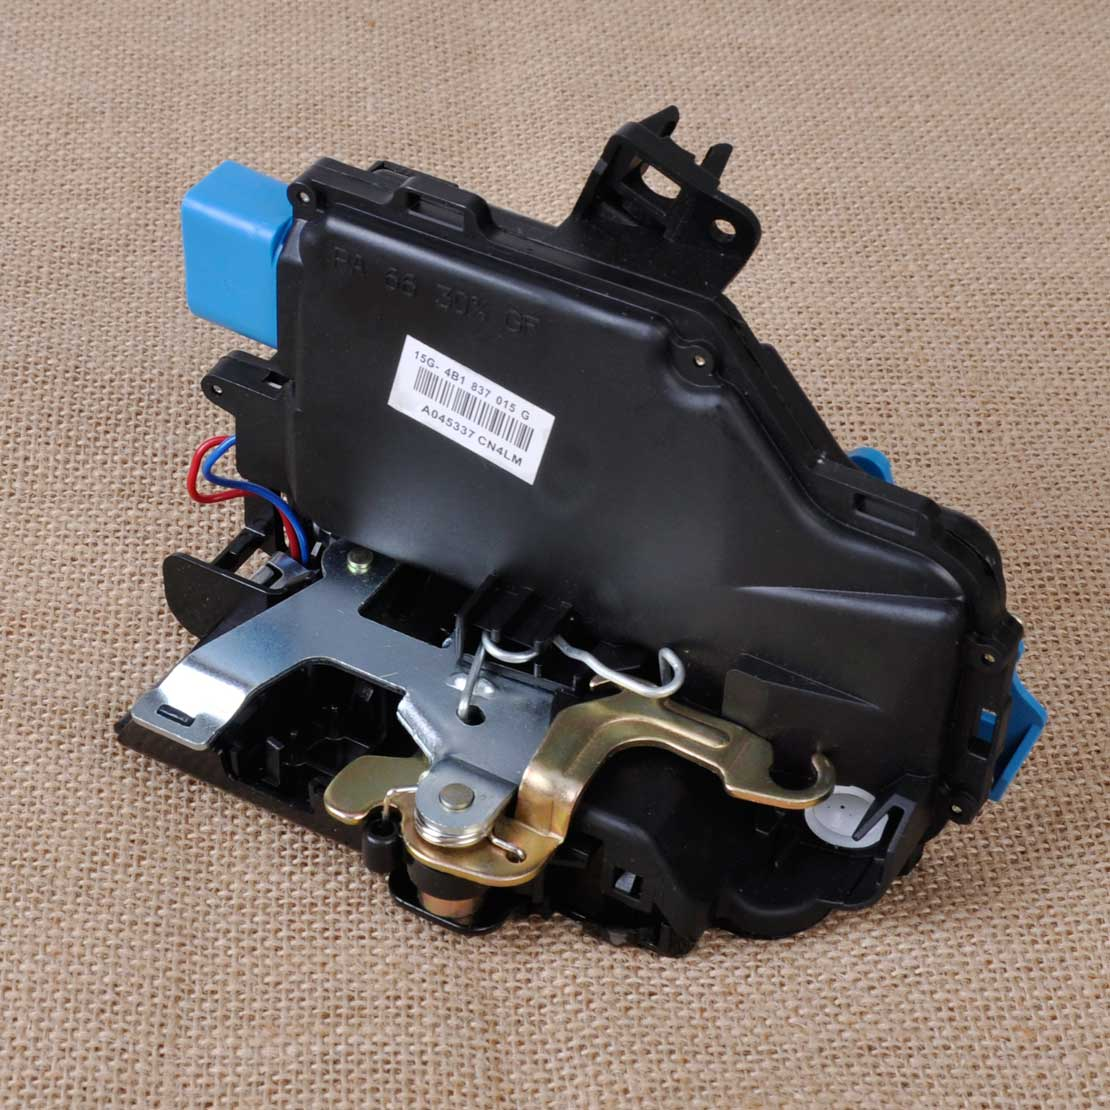 CITALL Front Left Driver Door Lock Latch Actuator 3D1837015 1TD837015A 3D1837015AB for VW Golf GTI MK5 Touareg Cayenne Porsche black door lock latch actuator driver front side left lh for vw jetta golf beetle easy to install